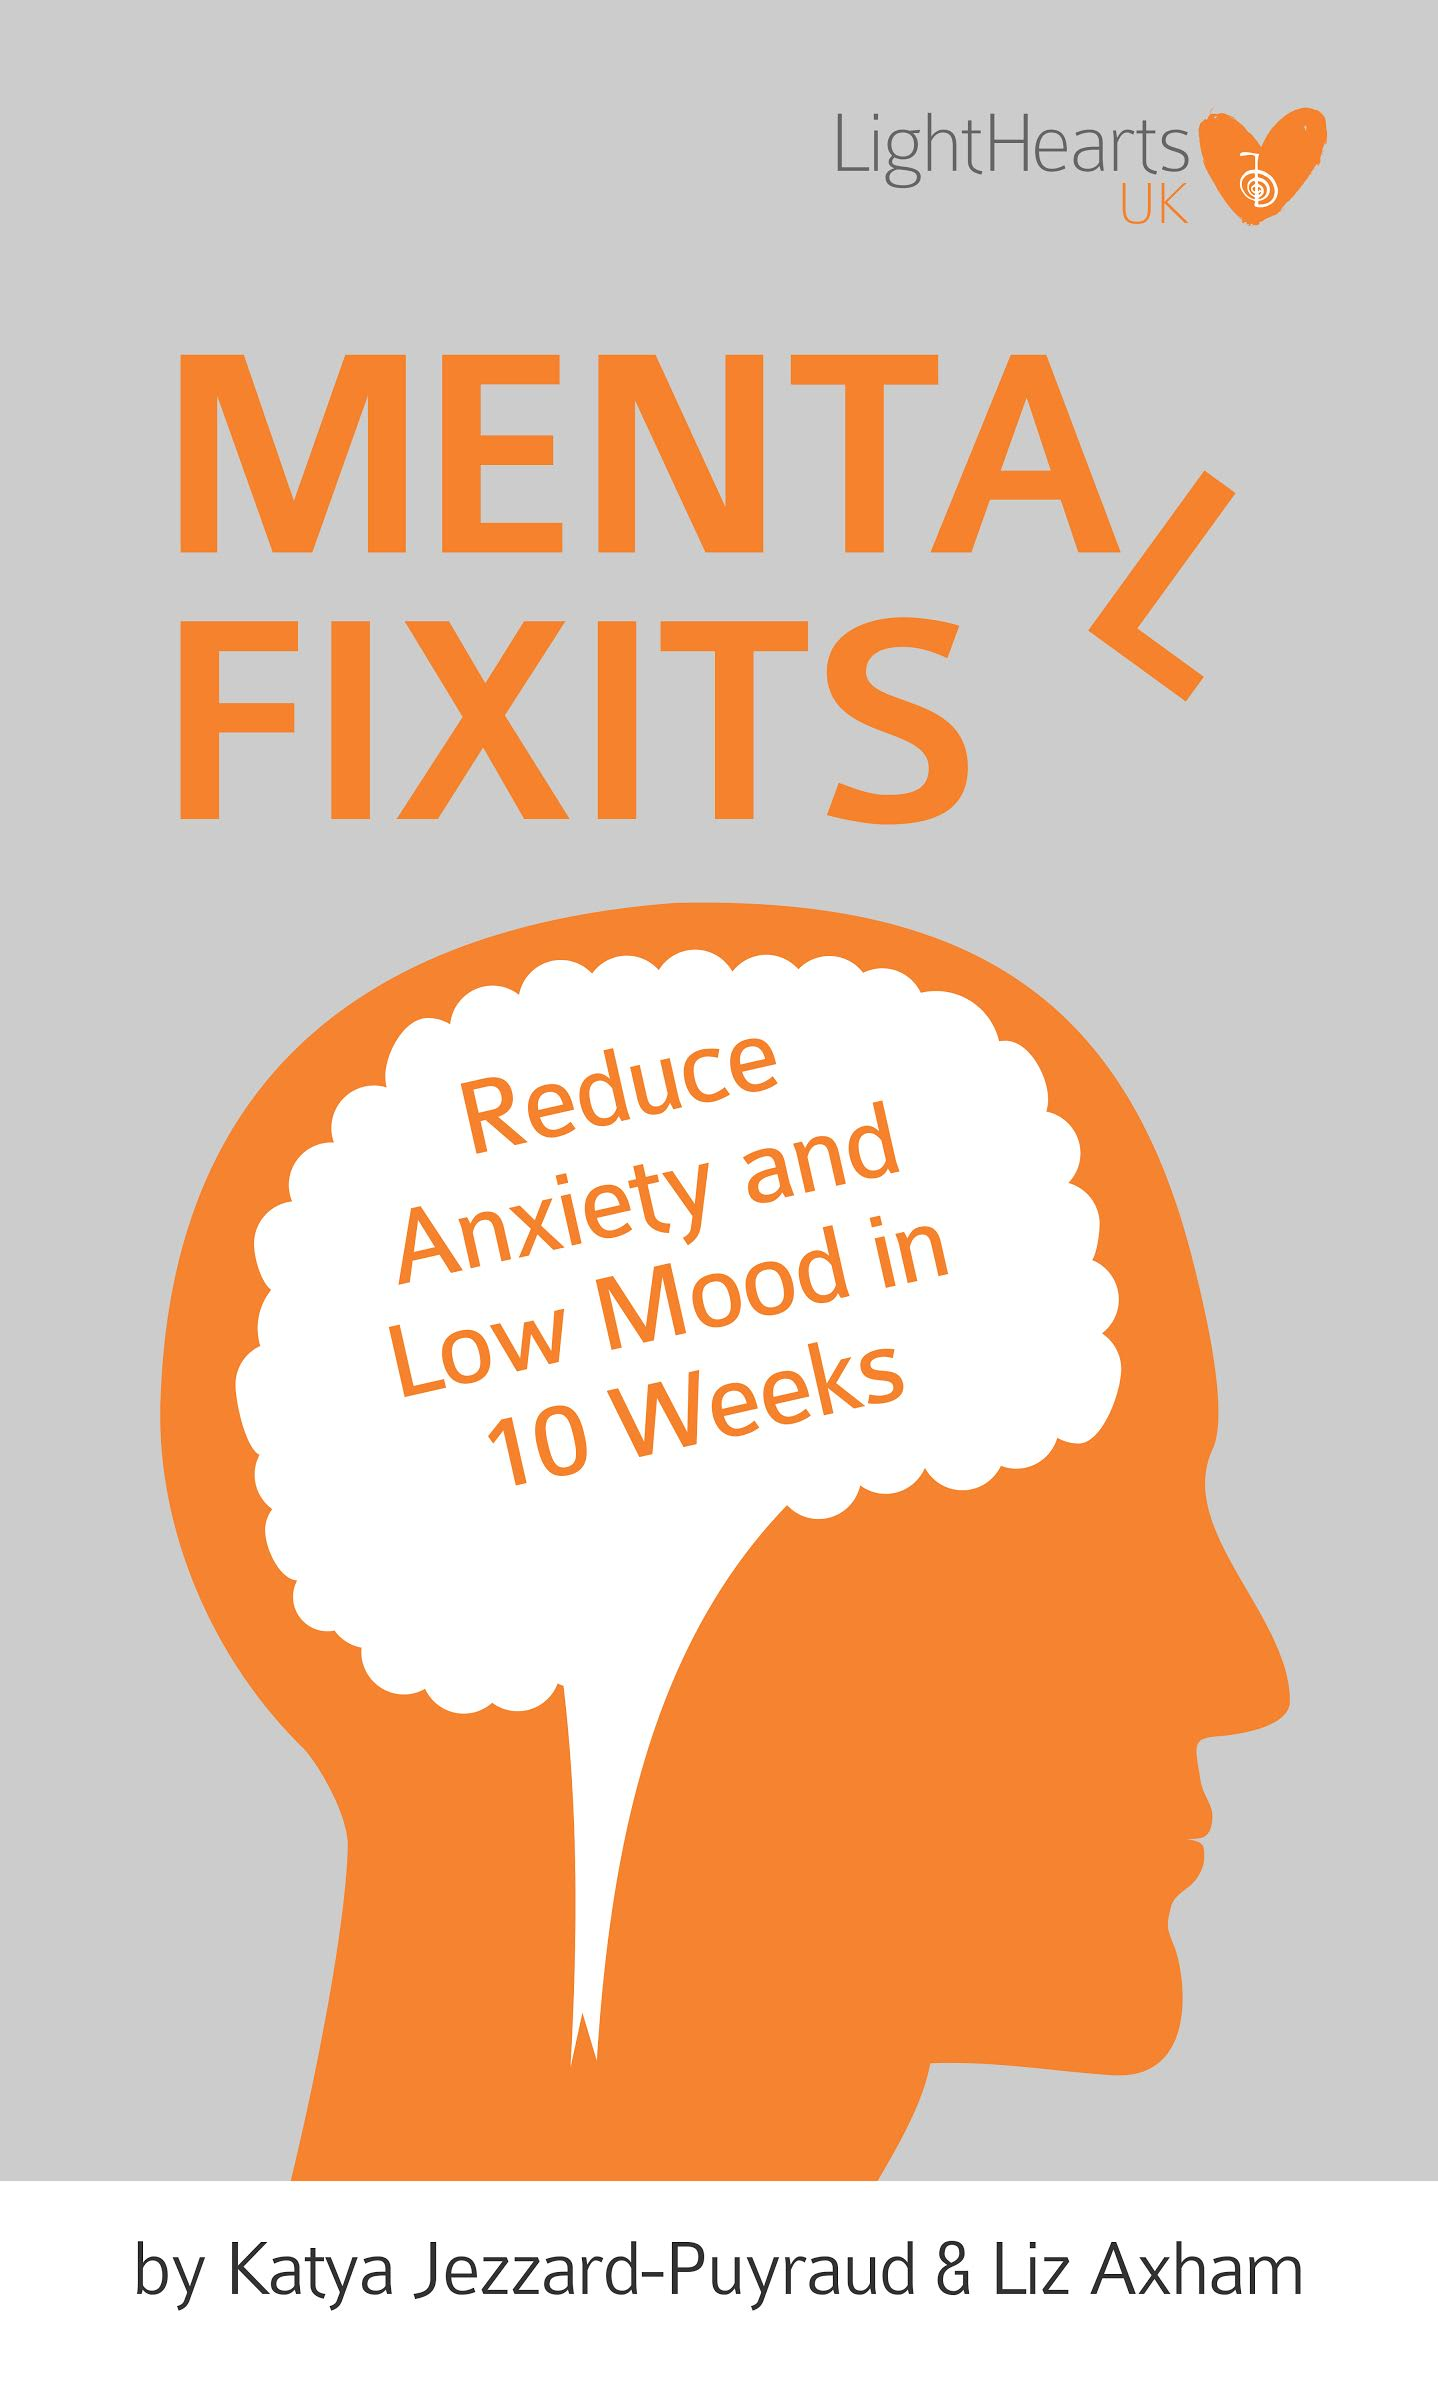 - GET THE FREE MENTAL FIXITS KINDLE EBOOK...Download the whole LightHearts UK mental health course for free with Kindle Unlimited. Includes personal stories from the LightHearts founders on how to deal with low self-esteem, eating disorders, depression, anxious thoughts and panic attacks.Click HERE to go to Amazon and find out how you can download your copy now.